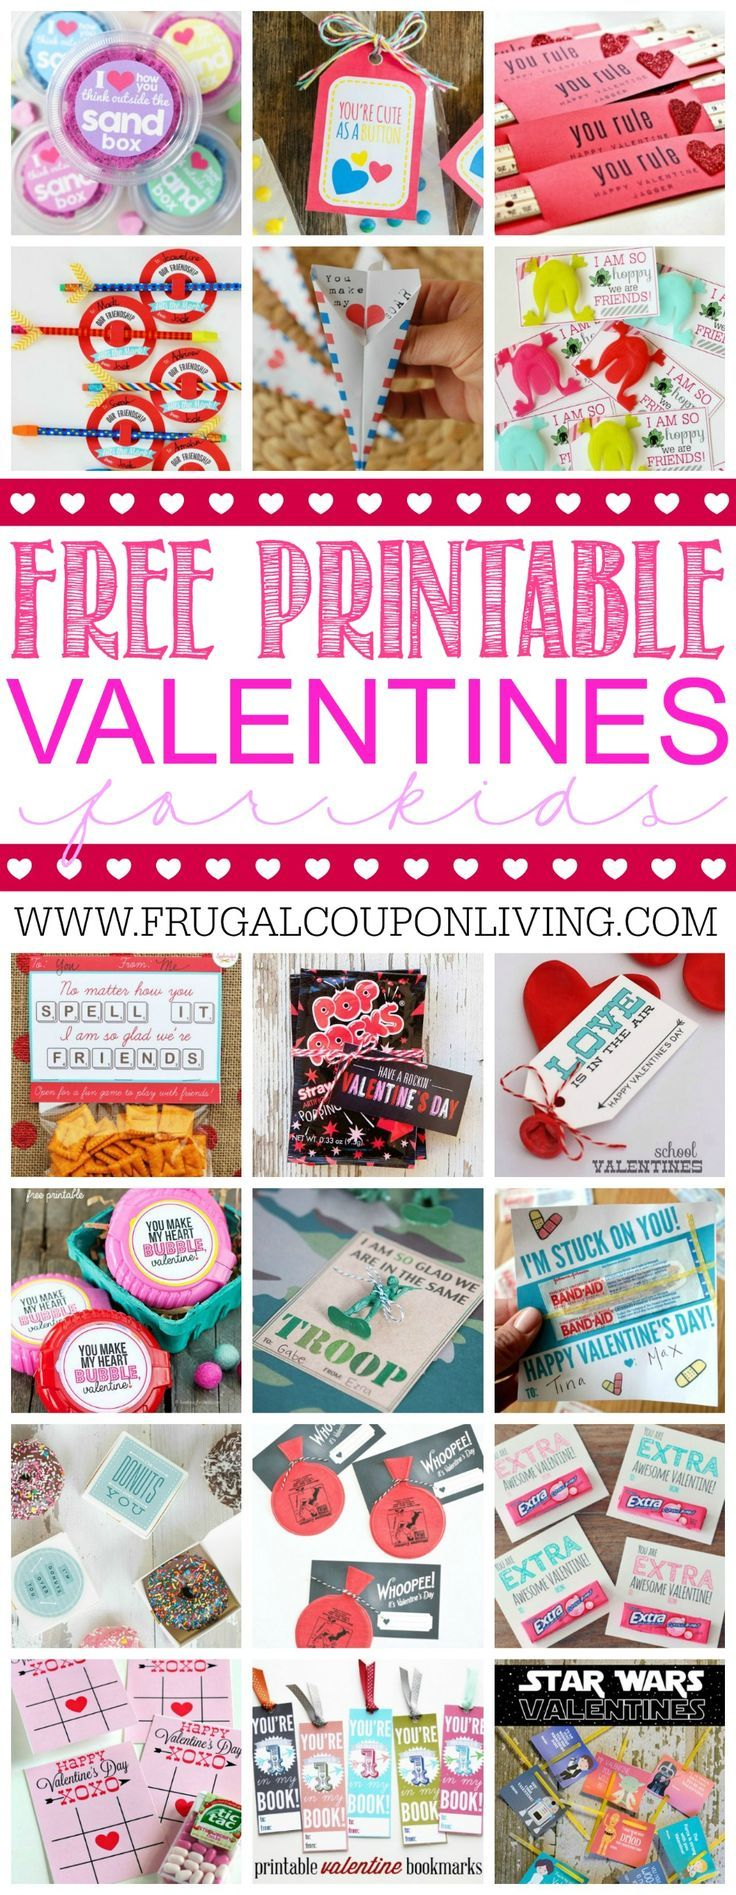 28 Printable Valentines for the Kids - fun printables for homemade valentines on Frugal Coupon Living. #valentines #valentinesday #valentinecrafts #valentinesdaycrafts #craftsforkids #printable #valentineprintables #valentinesdayprintables